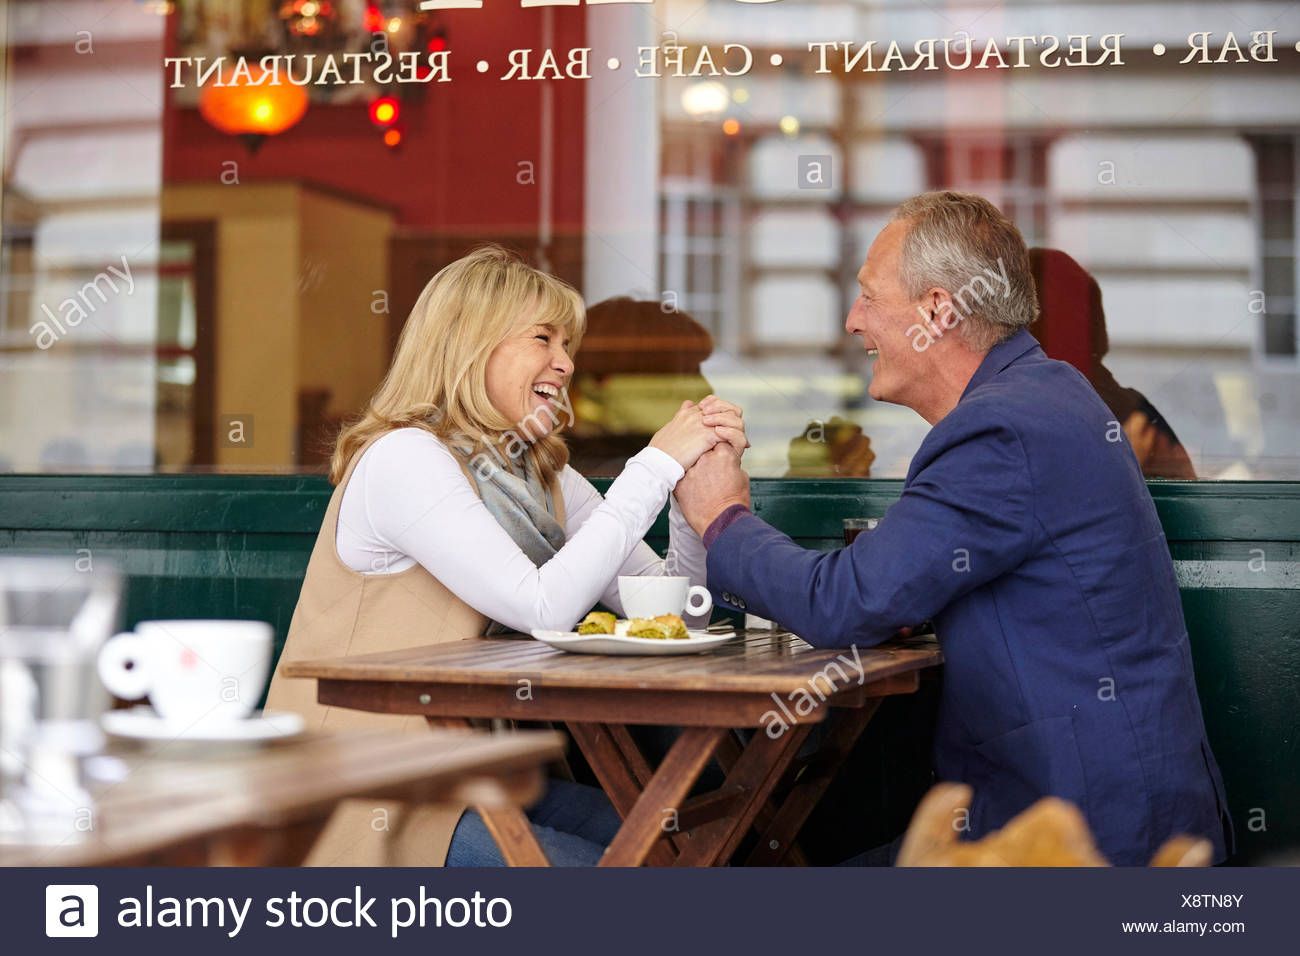 Mature dating couple holding hands at sidewalk cafe table - Stock Image